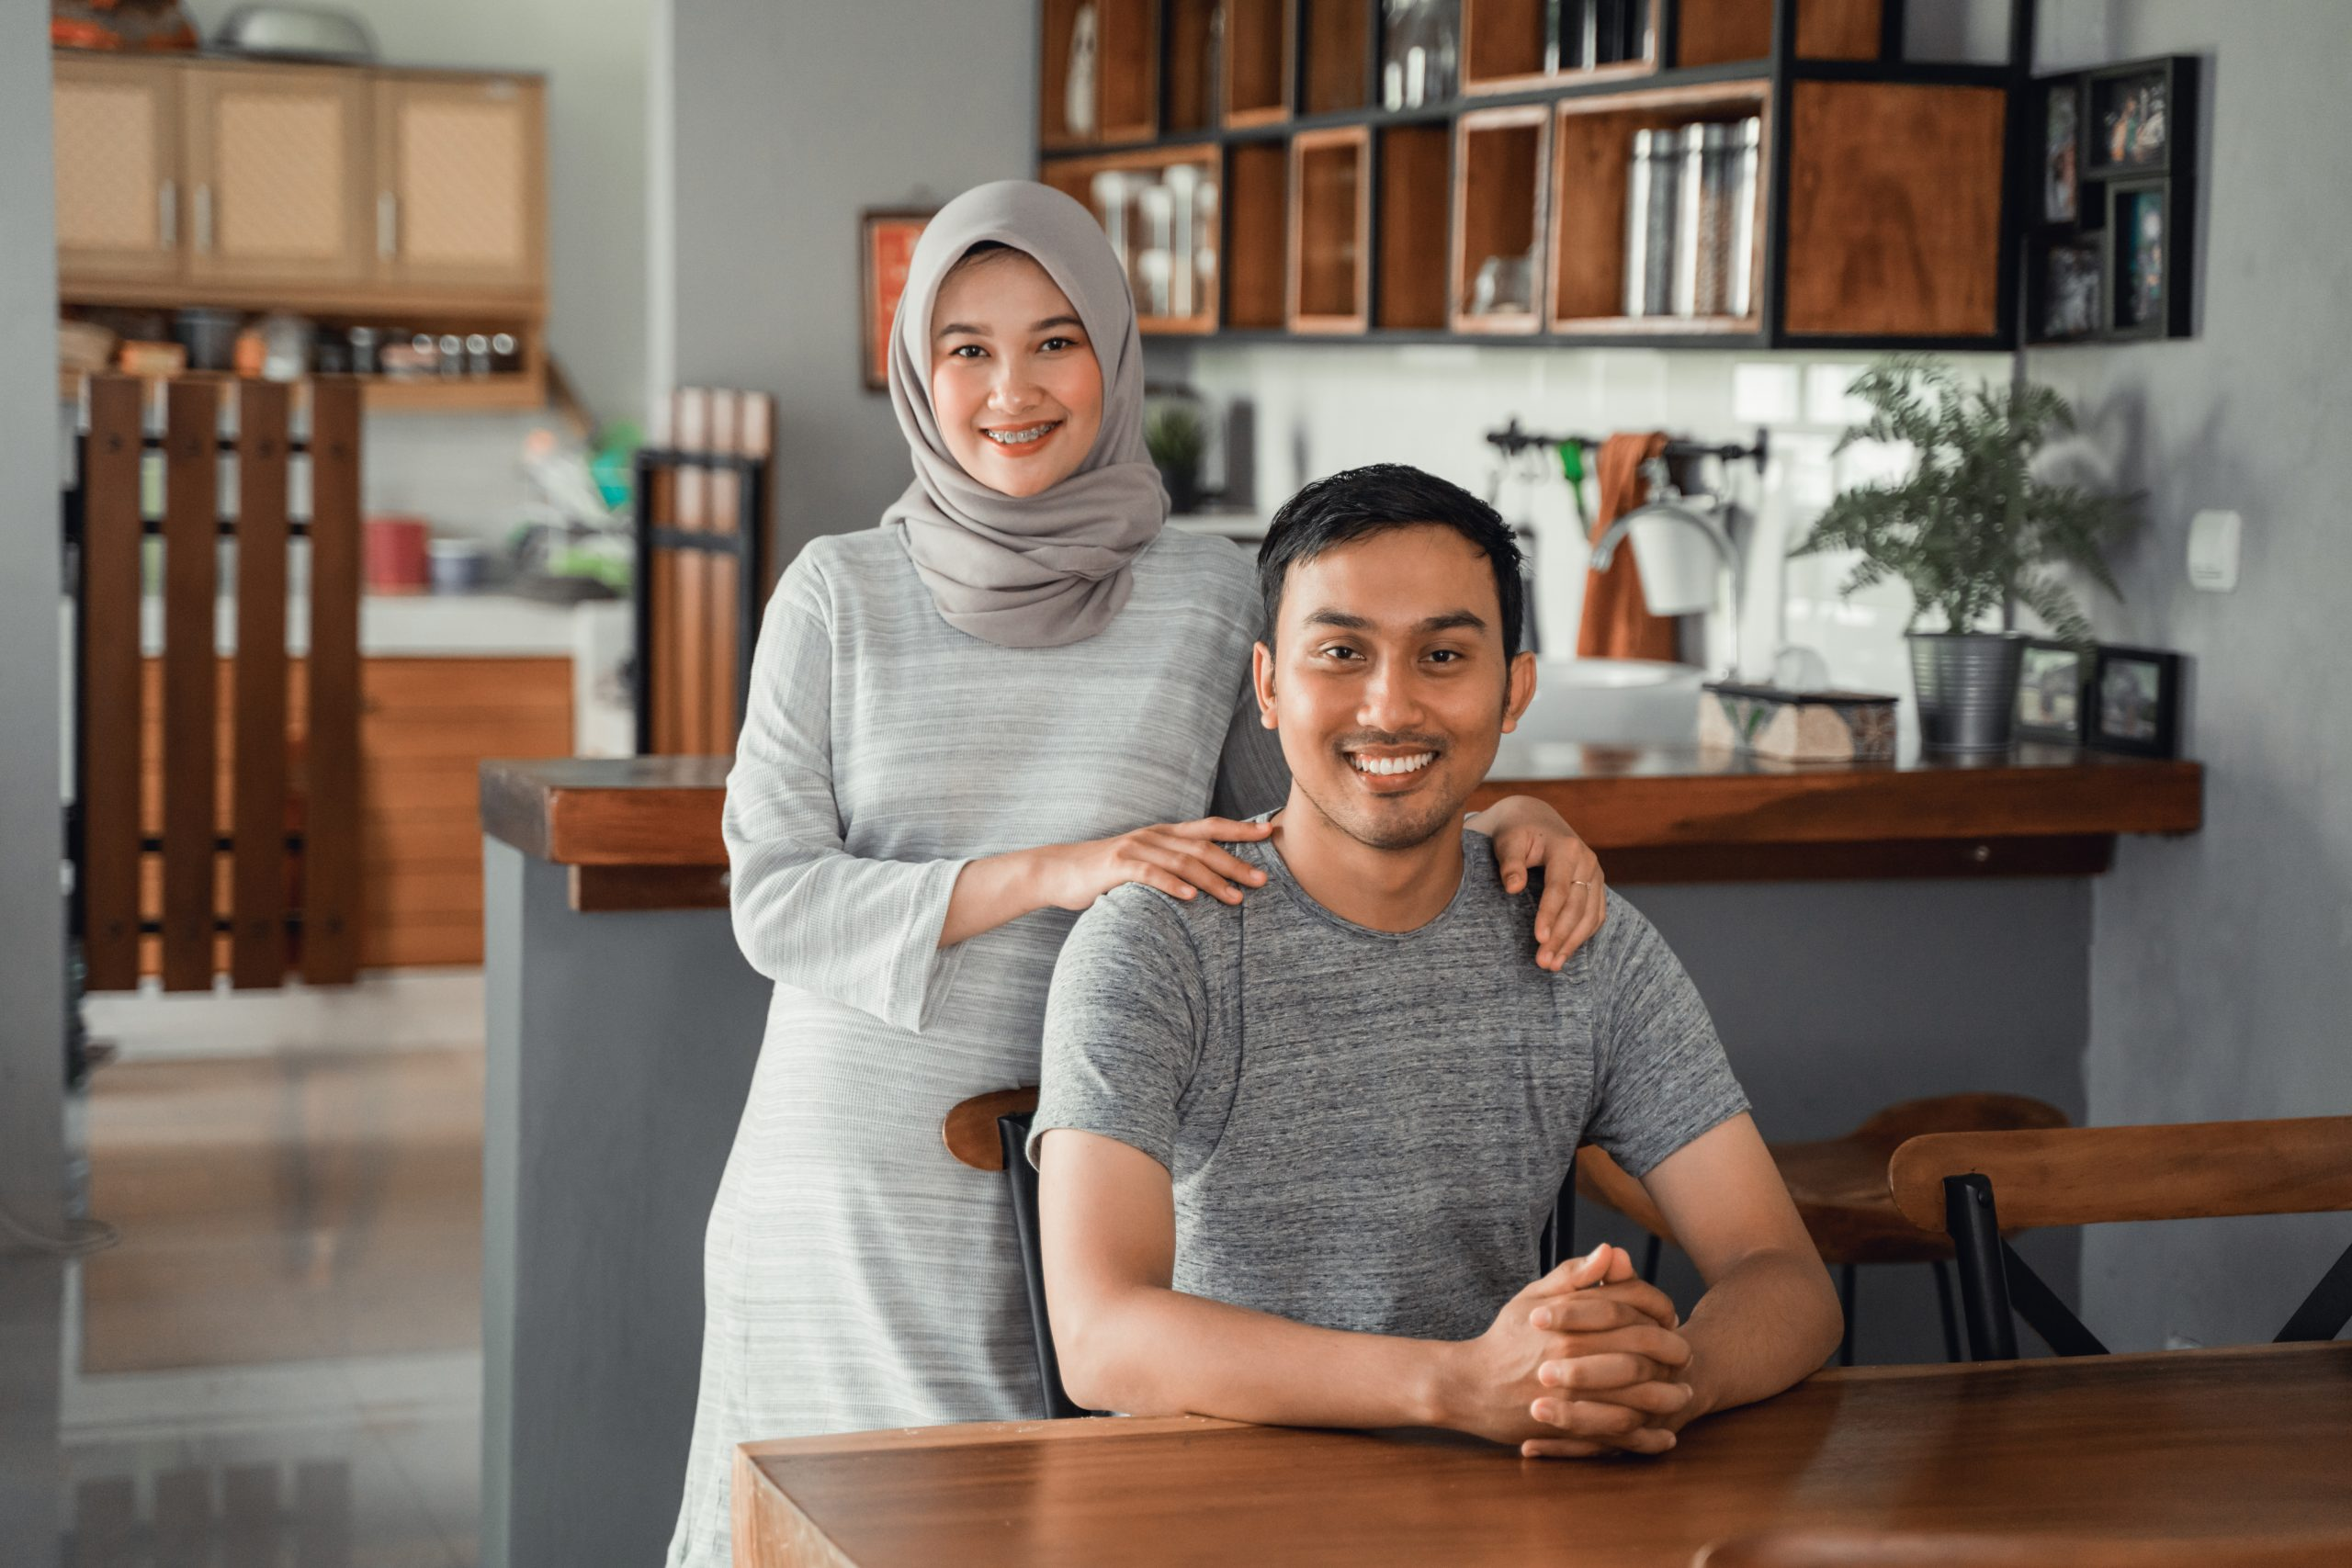 muslim-couple-sitting-dining-room-together-scaled-1